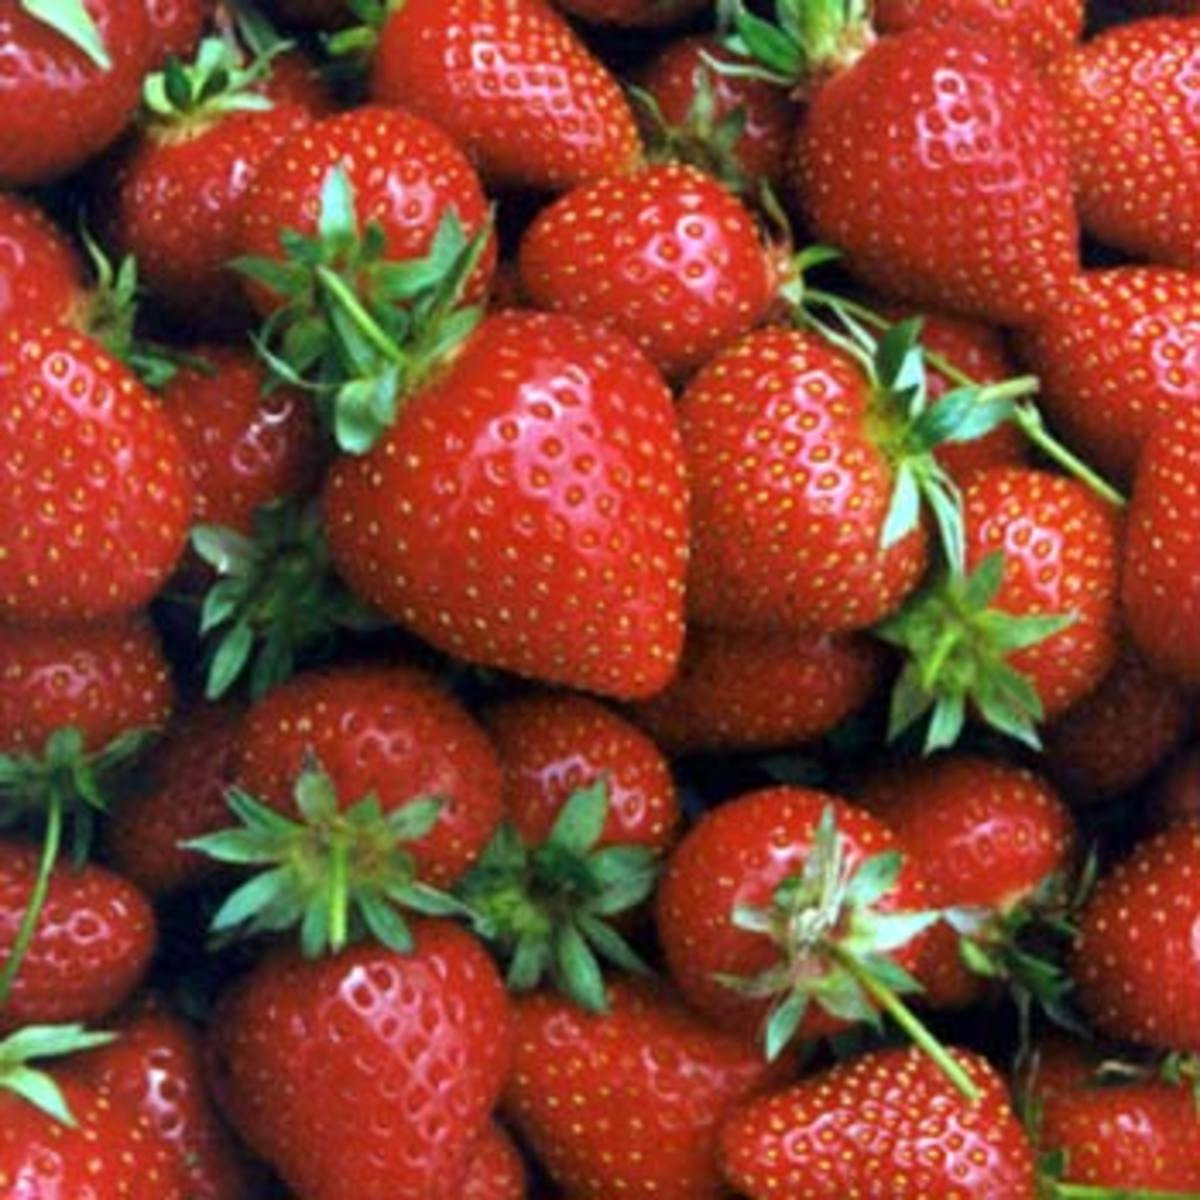 Strawberry Aggregate Fruit